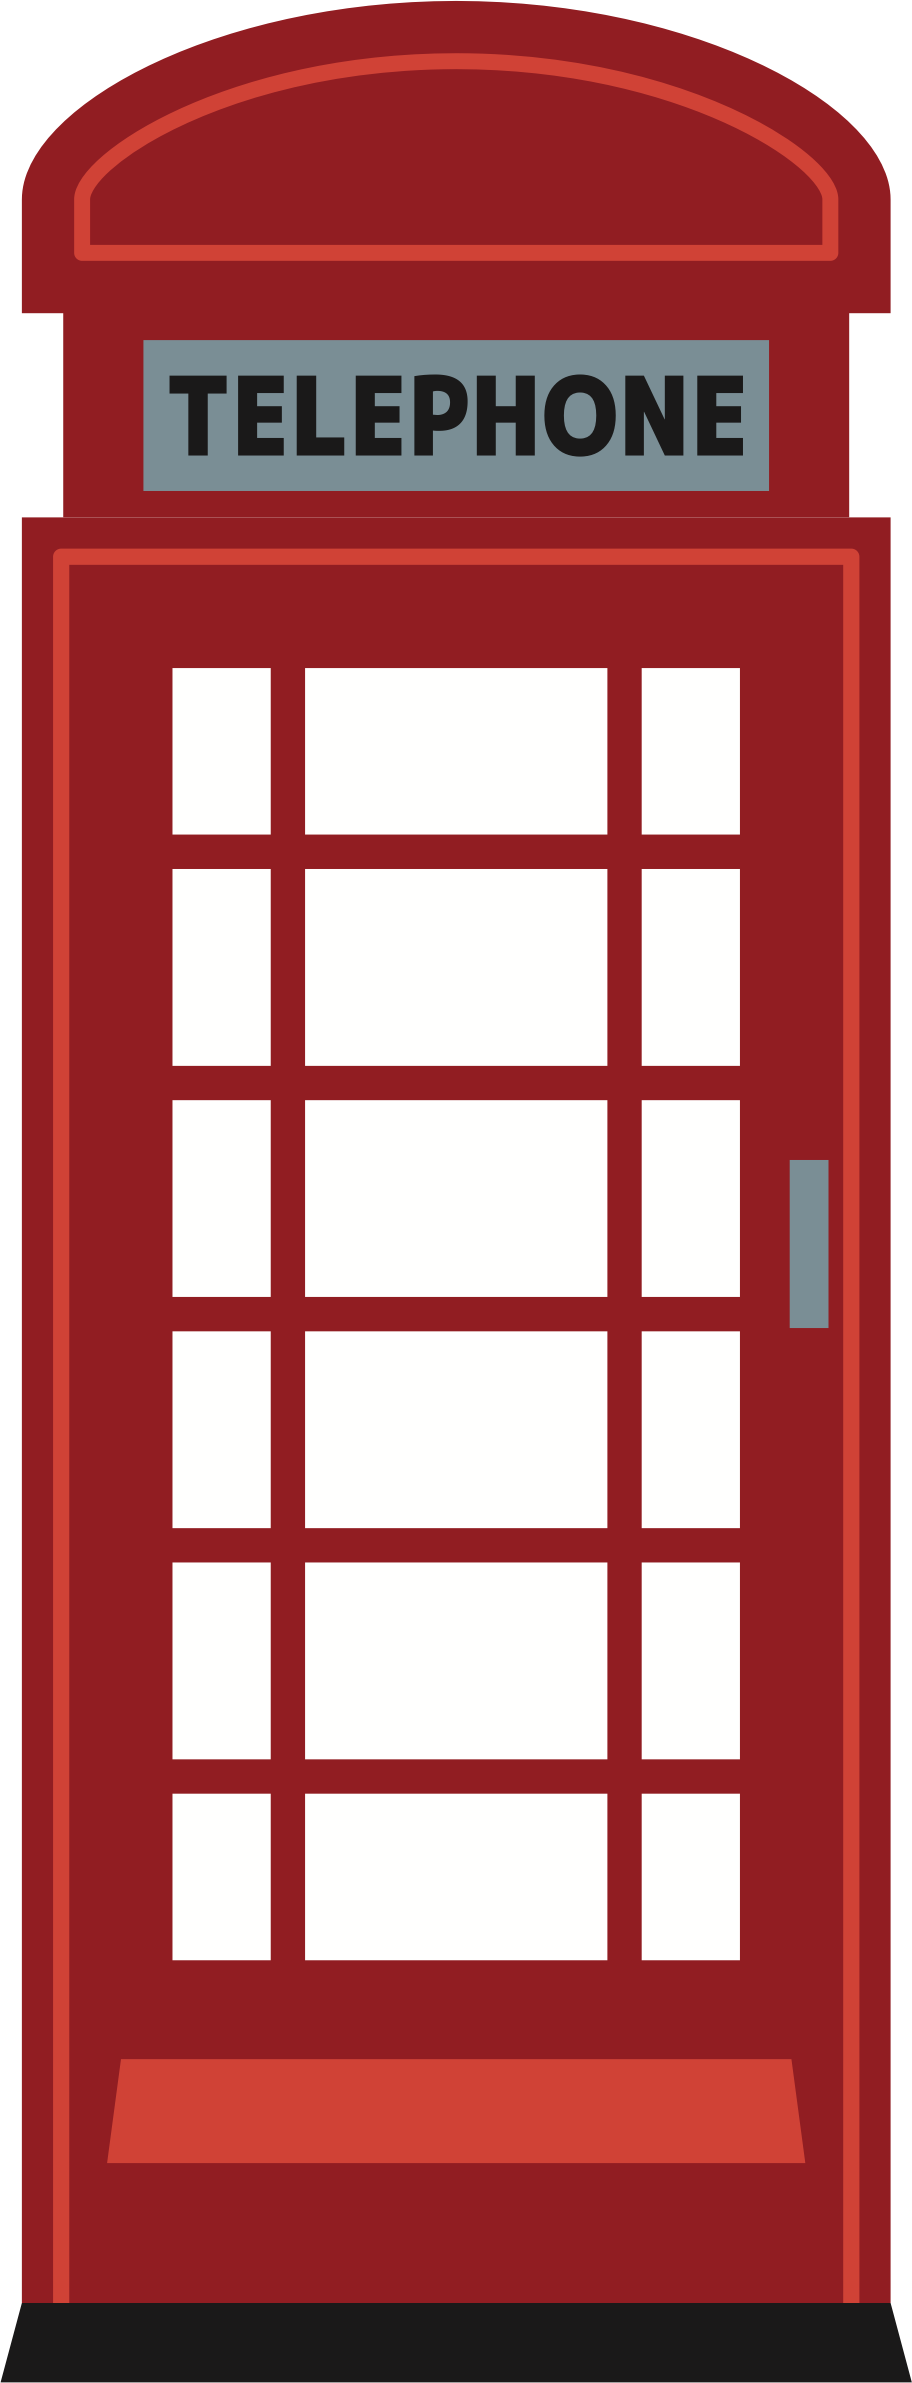 Red Telephone Box by oksmith